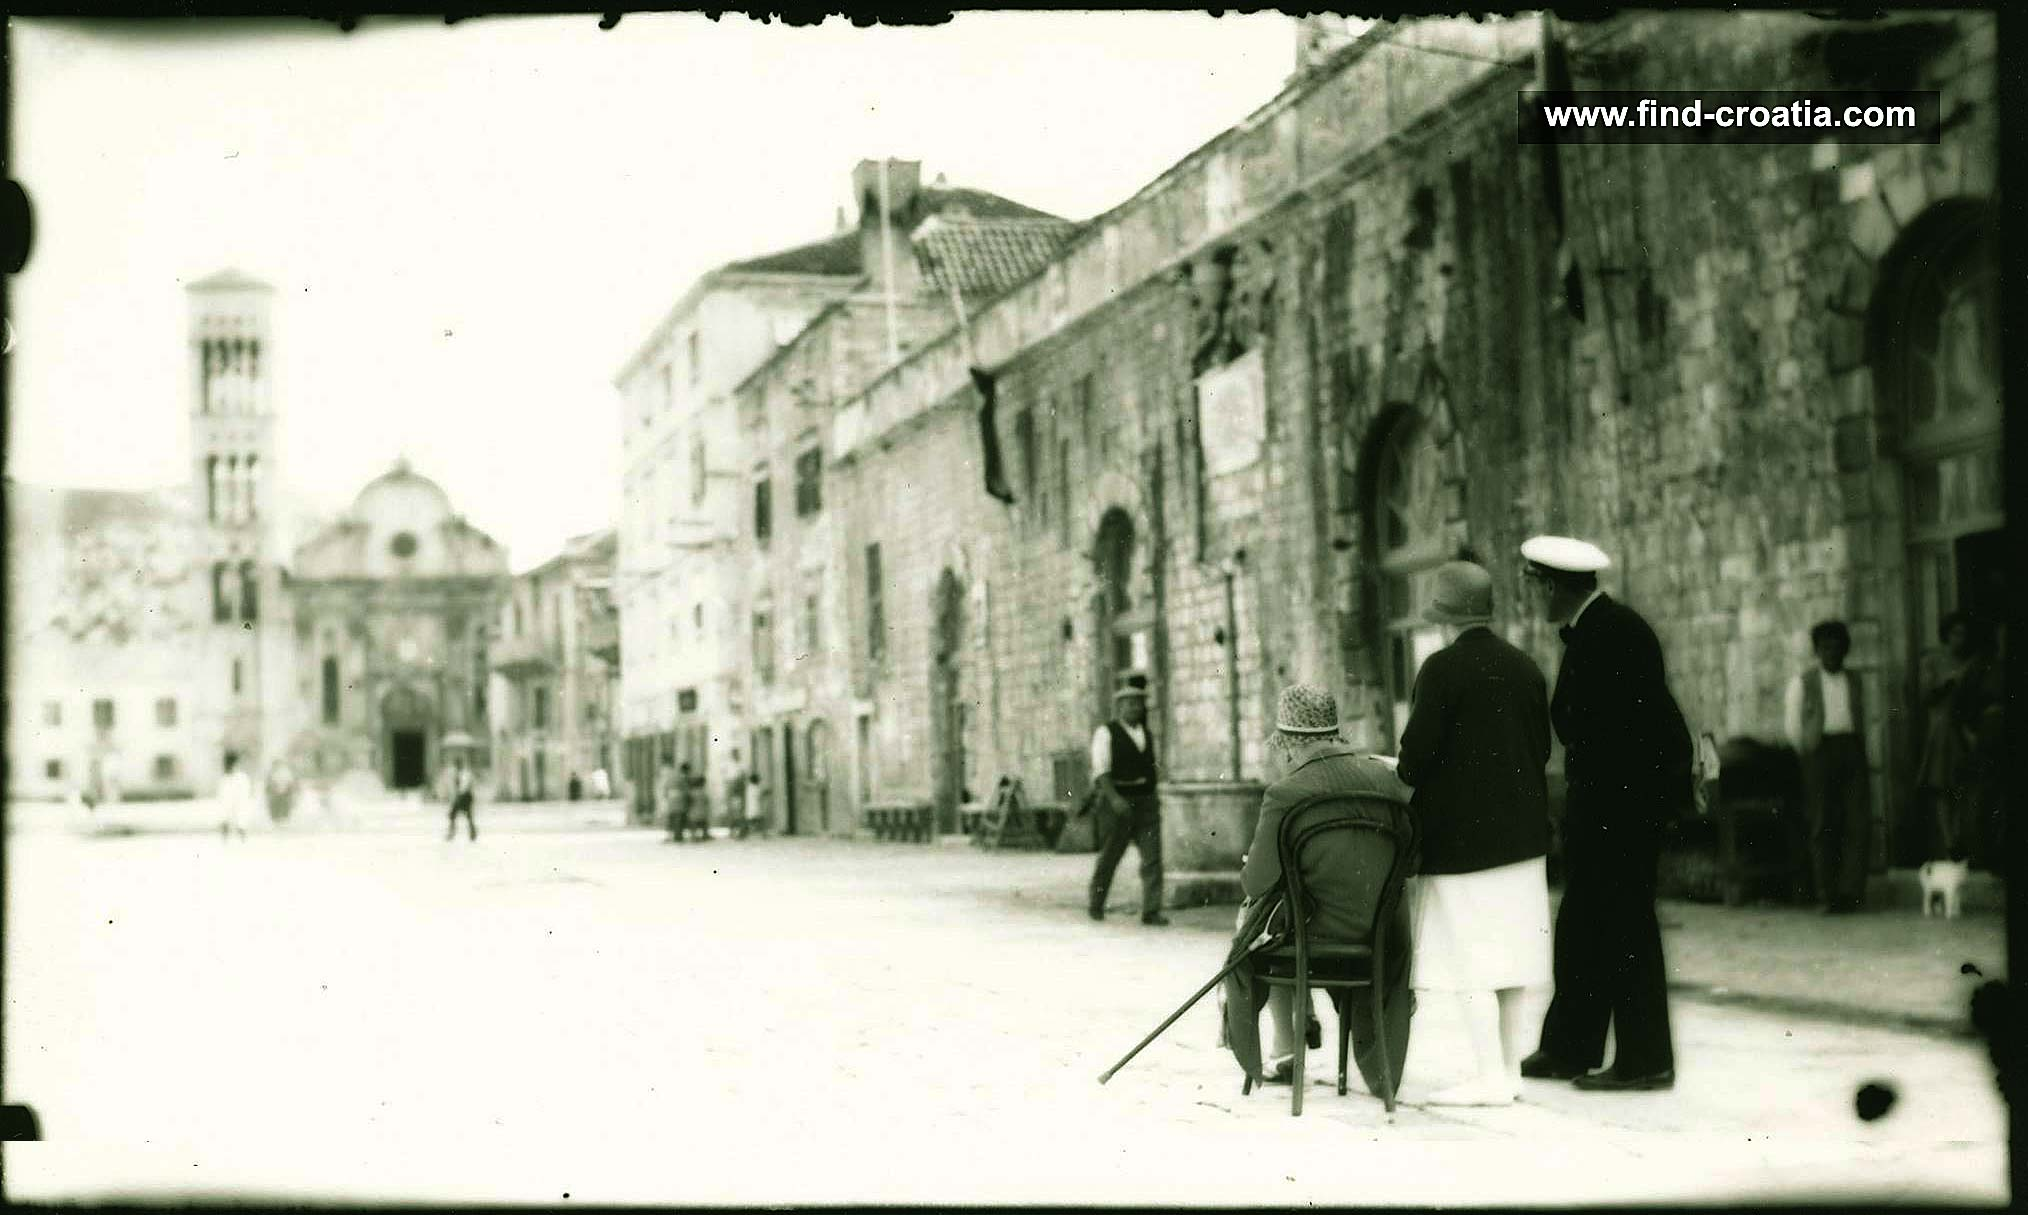 hvar-main-square1900s